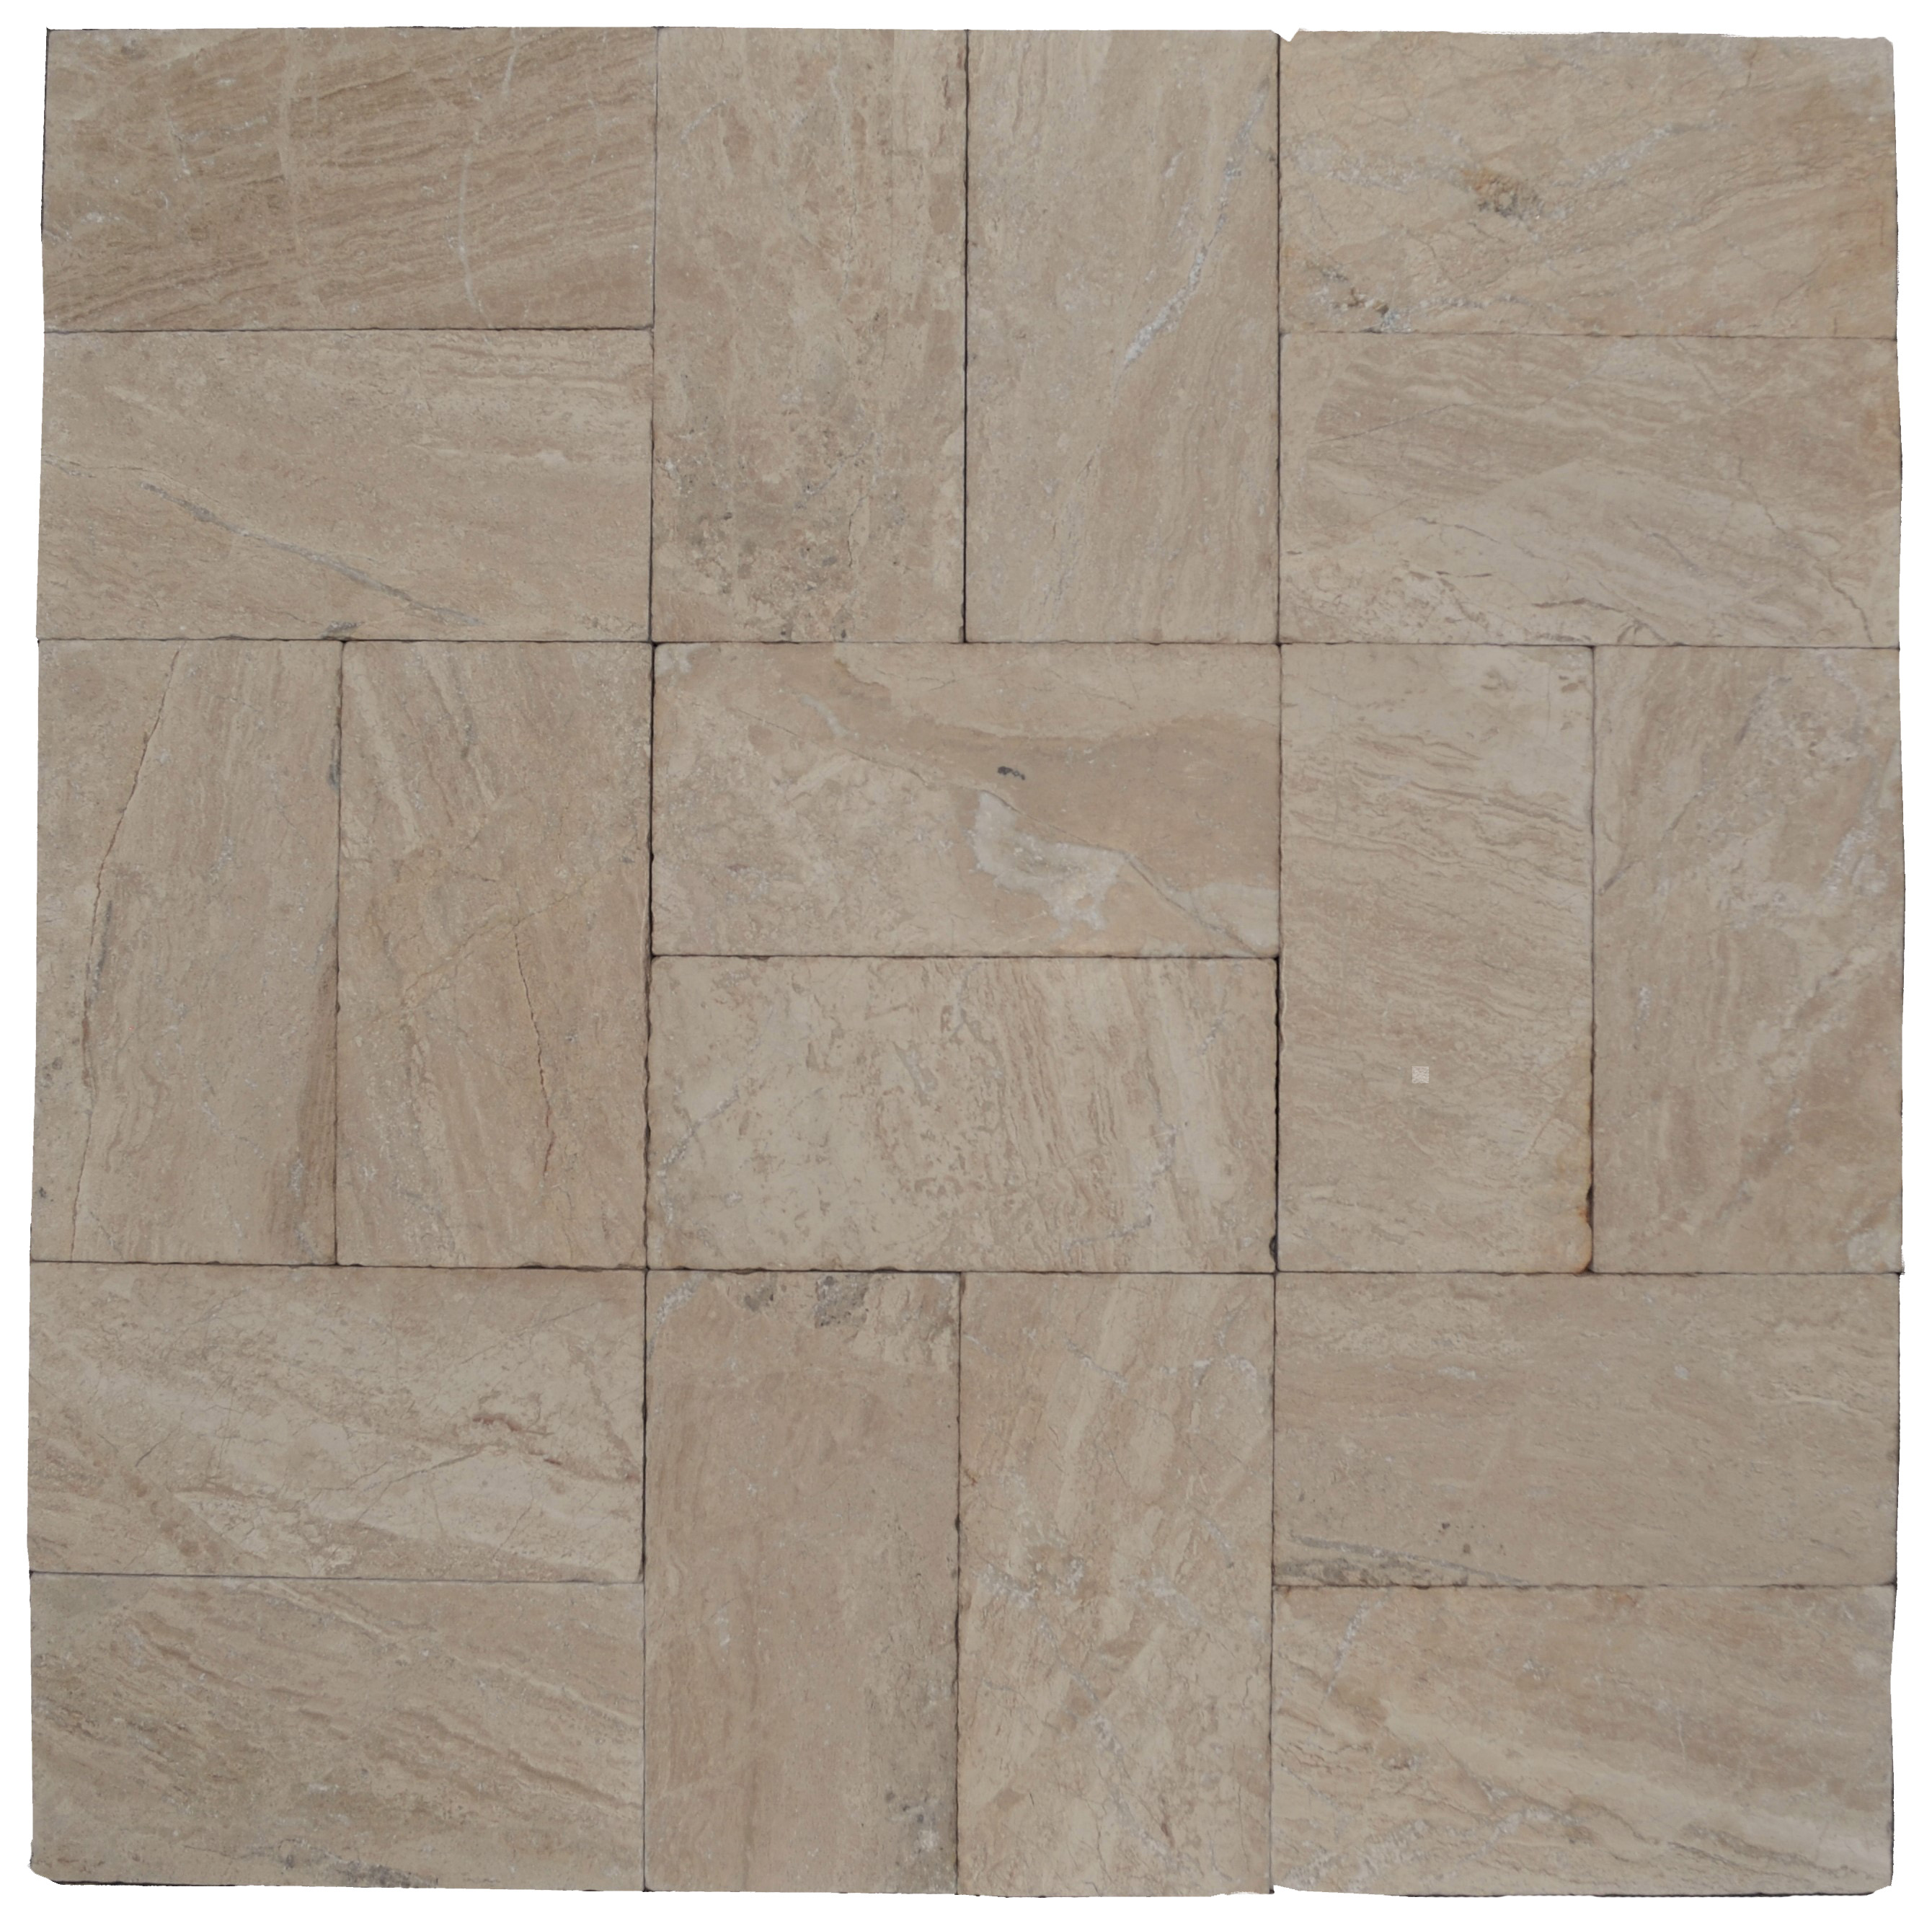 Venice Tumbled Travertine Pavers 6×12